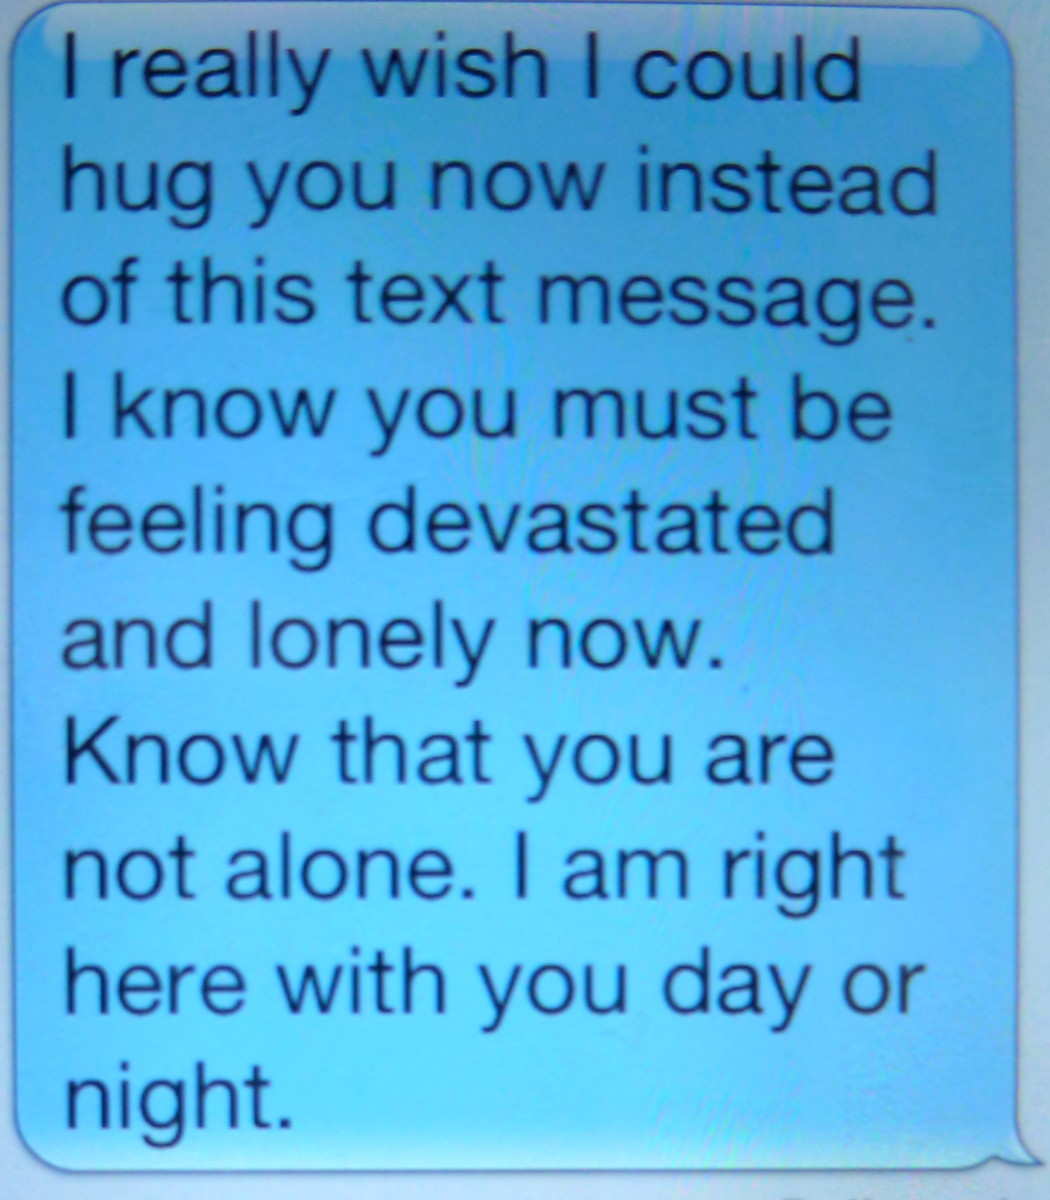 Friendship Quotes You Can Text : How to comfort a friend via text message hubpages